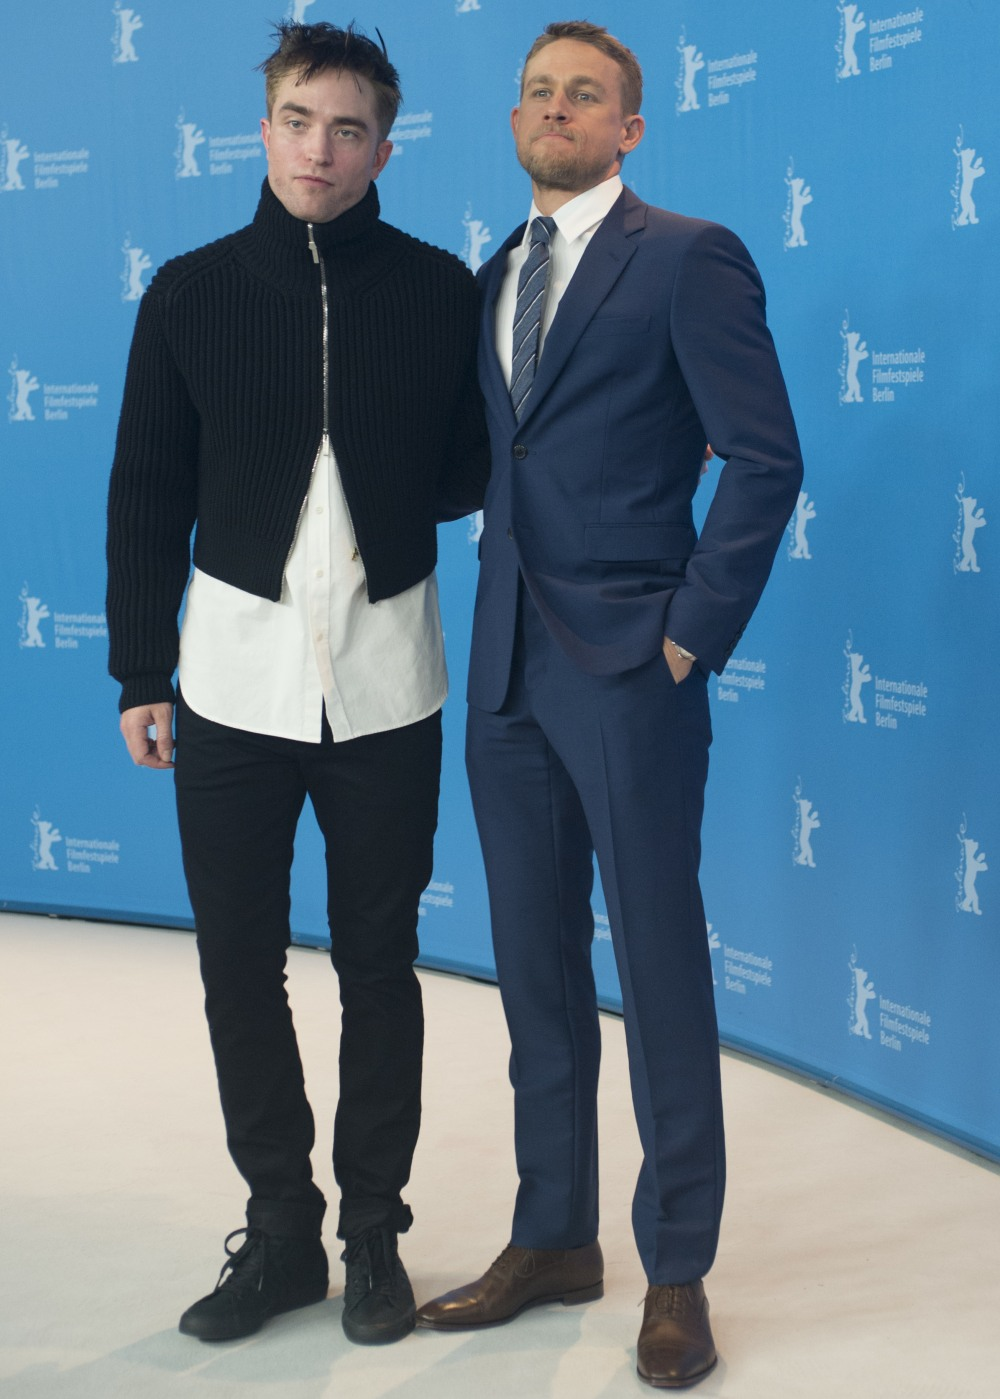 67th International Berlin Film Festival (Berlinale) - Call me by your name at Grand Hyatt Hotel